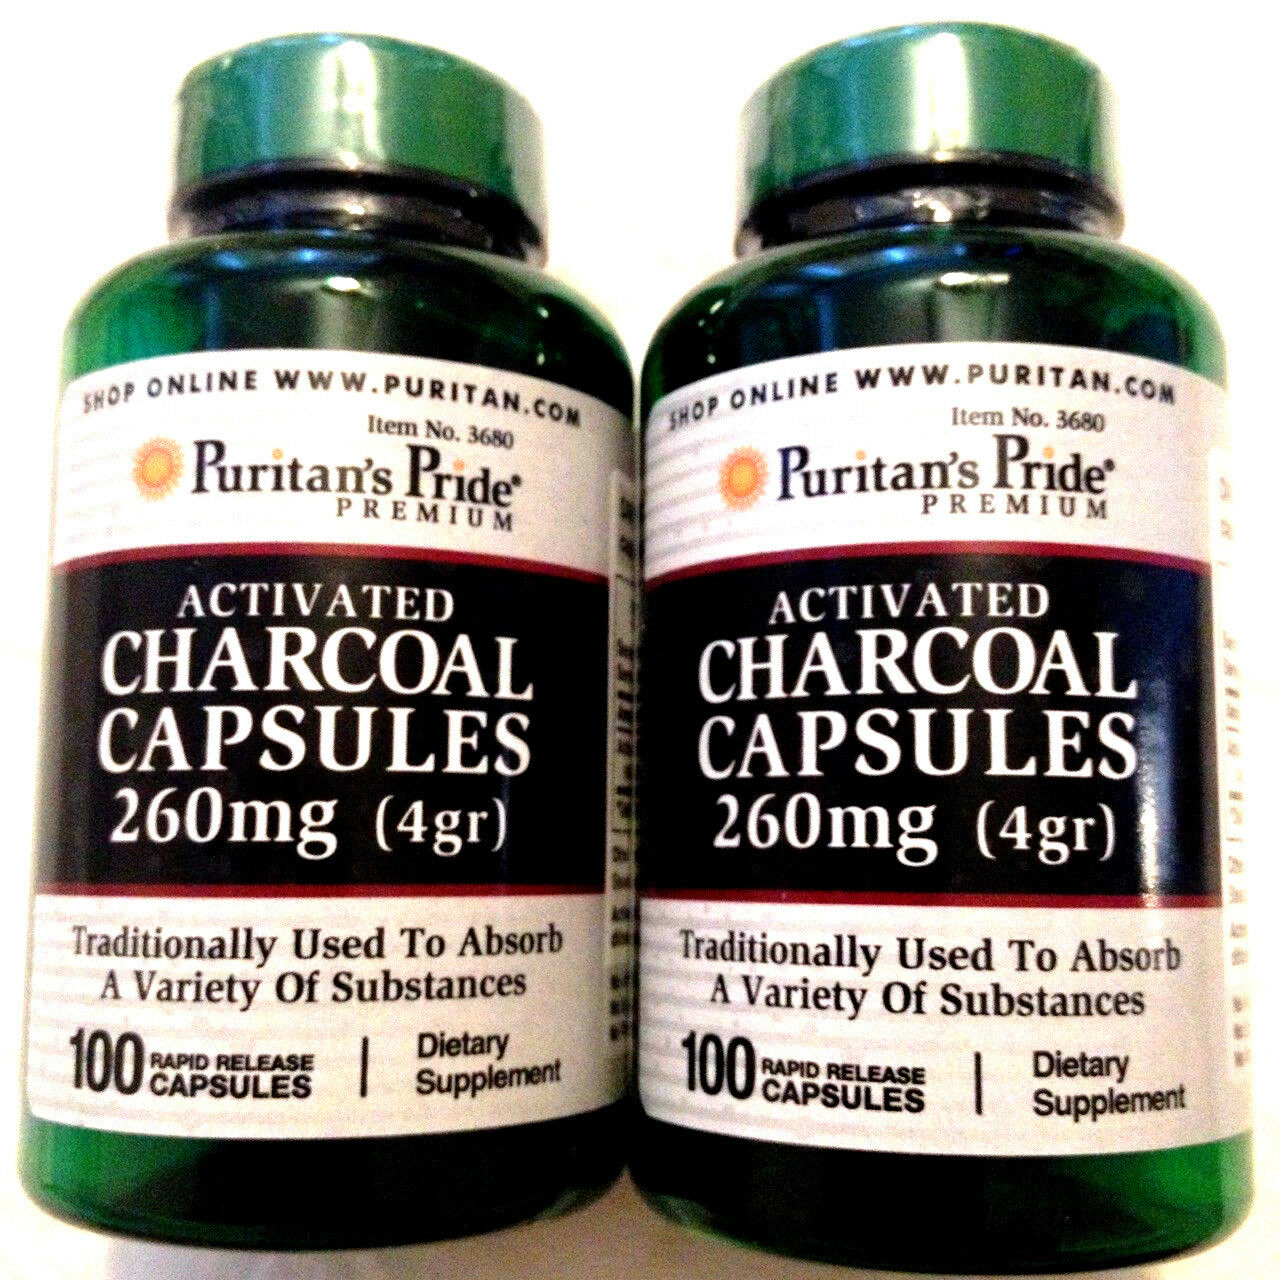 activated charcoal 520 mg 100 capsules at the vitamin shoppe - HD1280×1280